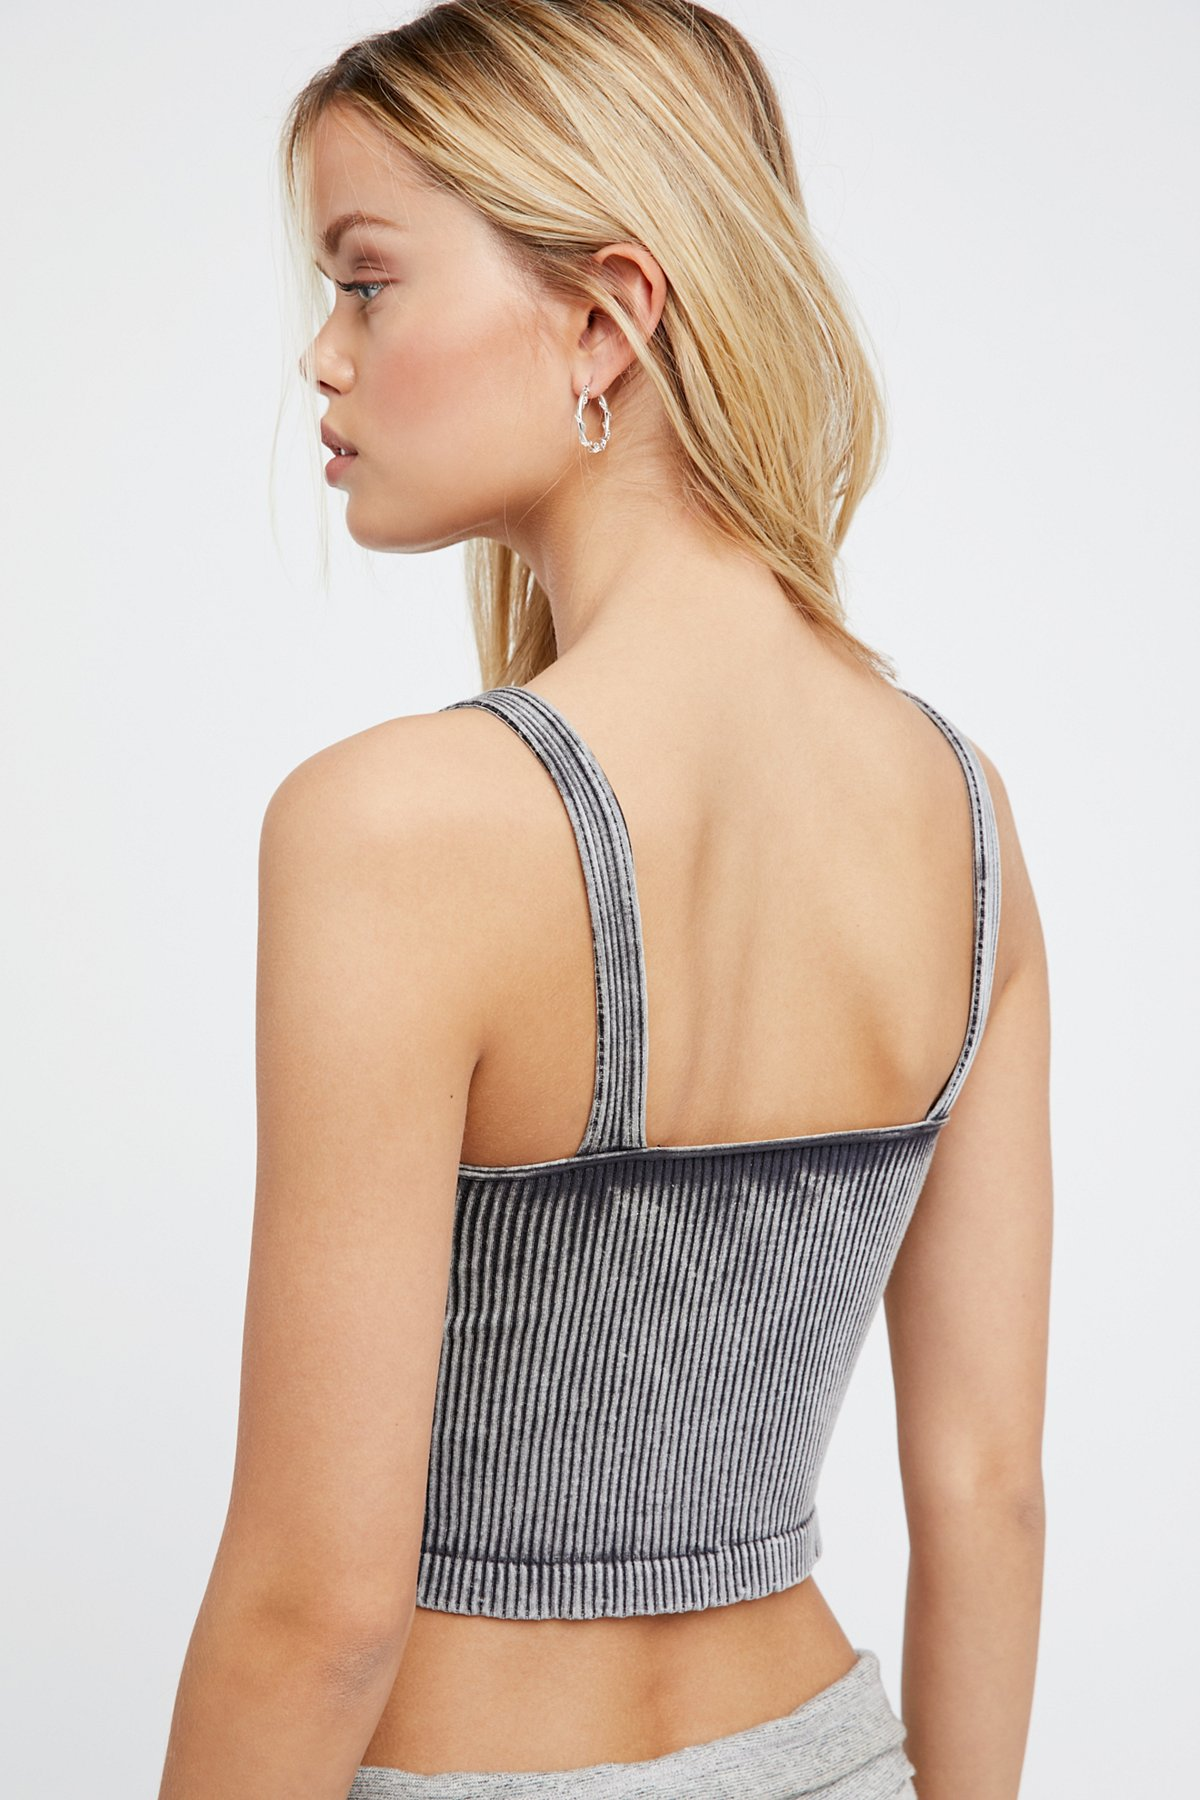 New-Free-People-Intimately-Washed-Seamless-Crop-Top-Ribbed-Cami-Multicolors-38 thumbnail 3